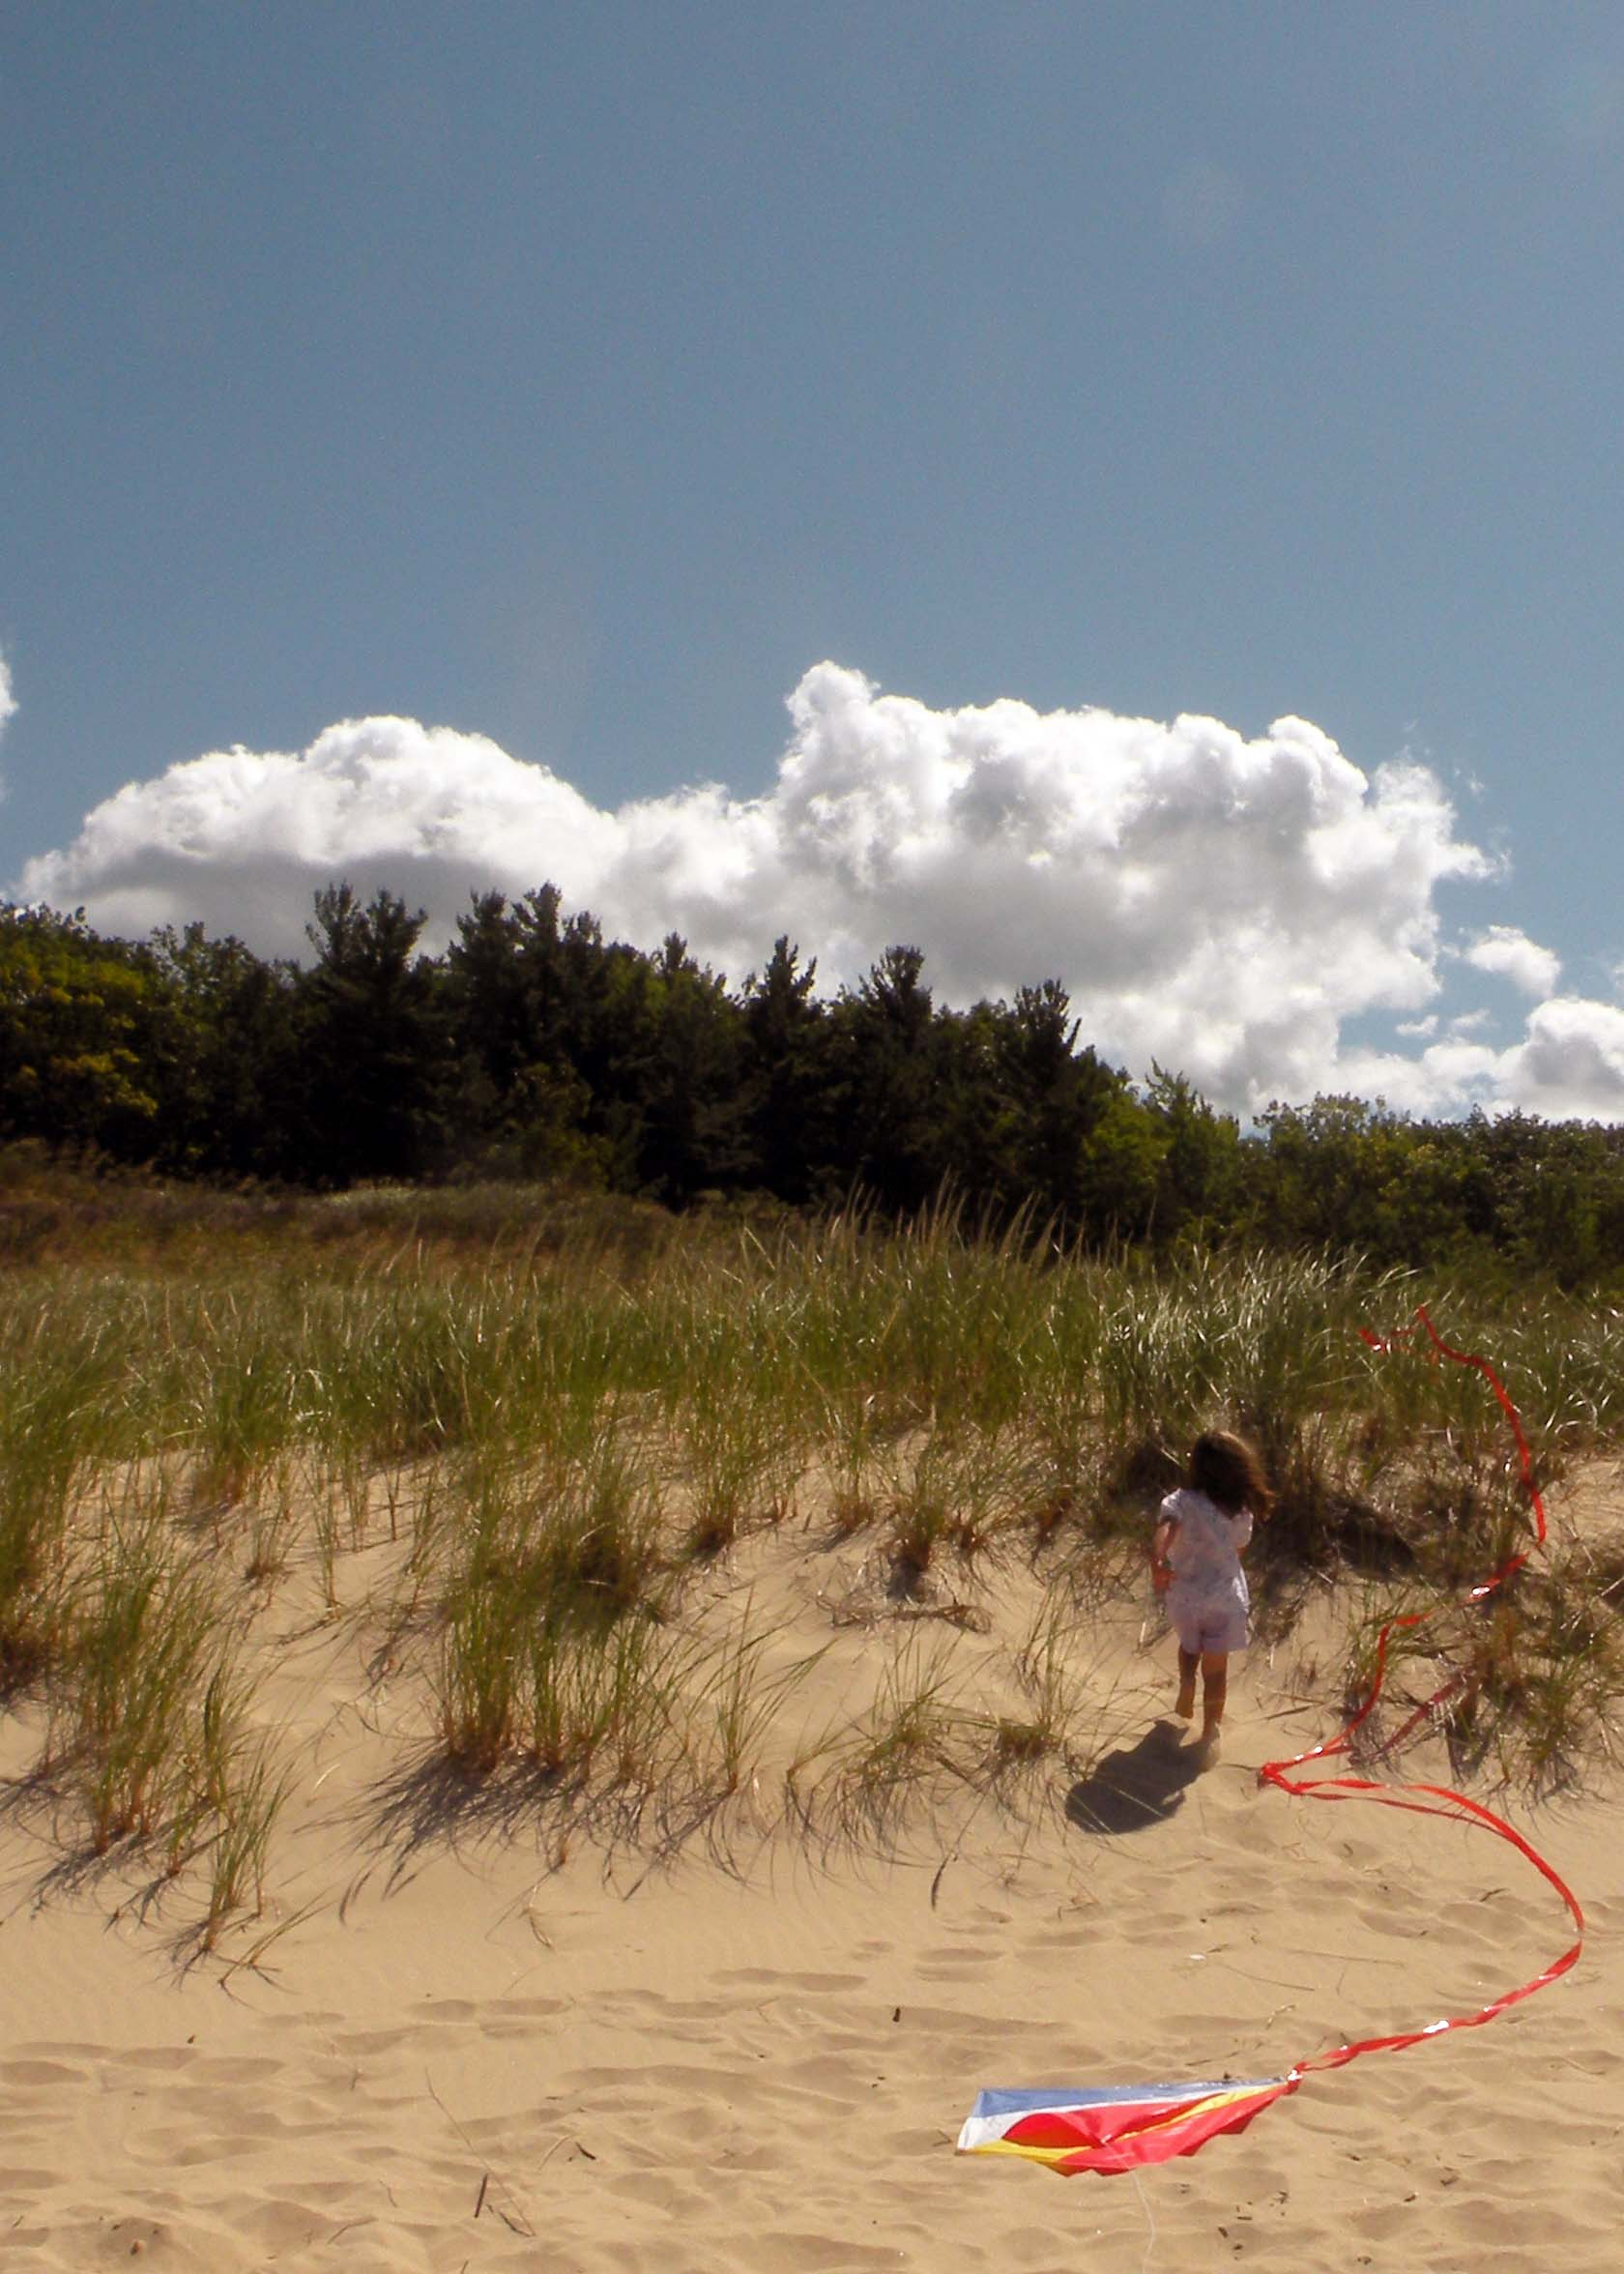 Lake Michigan Recreation Area - flying a kite on the beach